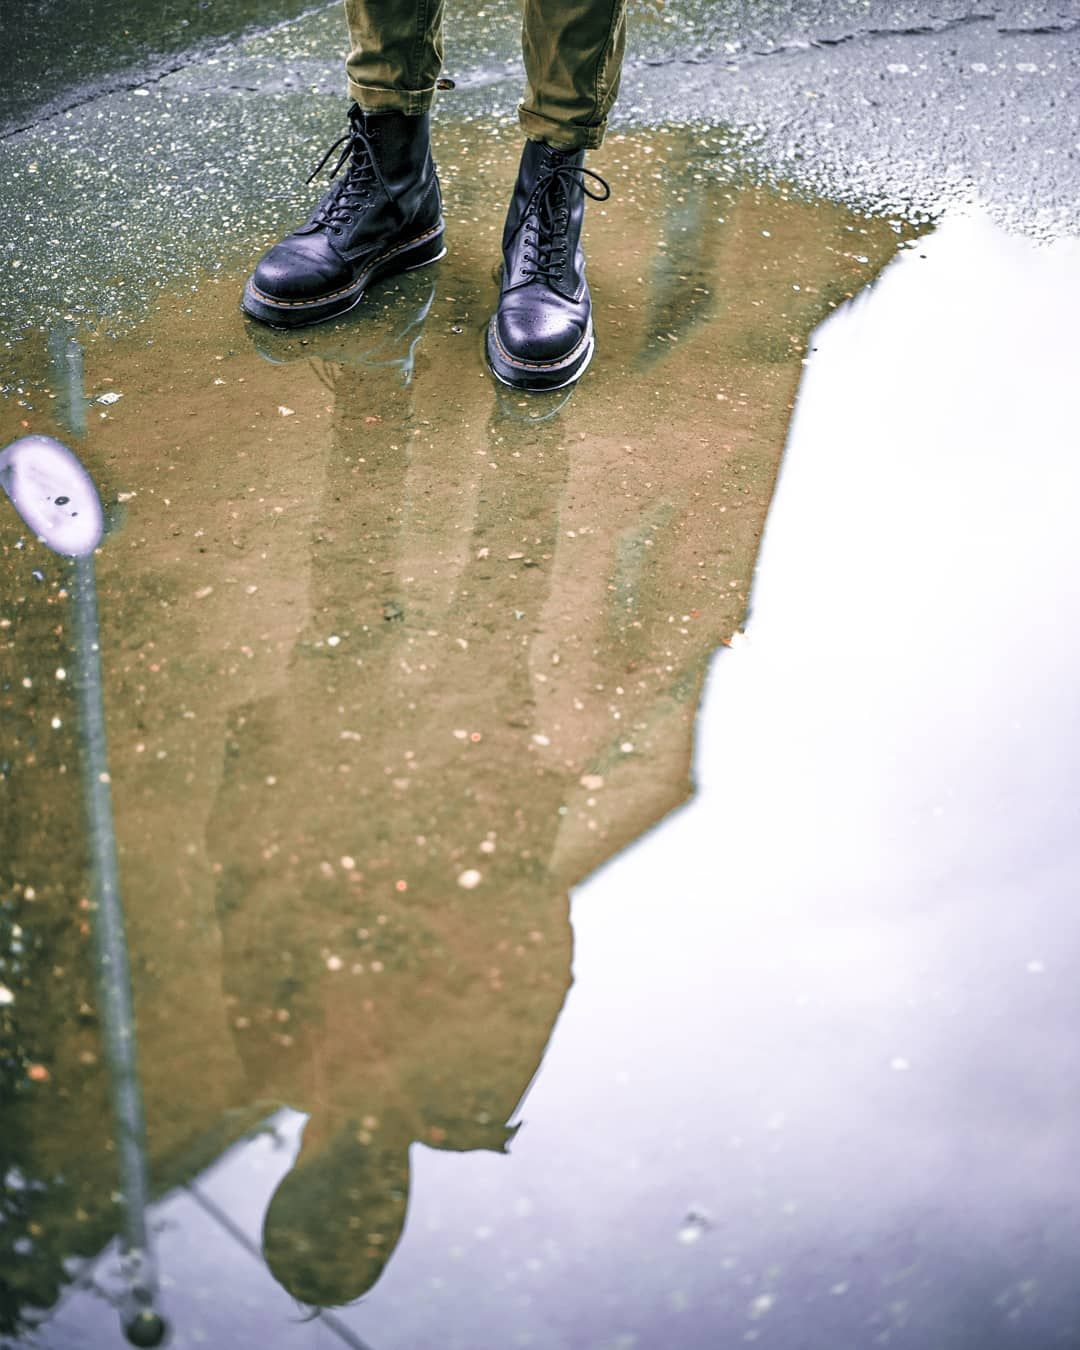 I see my reflection in the window It looks different, so different than what you see🌚 😂 😱 🔥 #water#reflection#drmartens#rain#rainyday#sky#cloudy#cloudyday